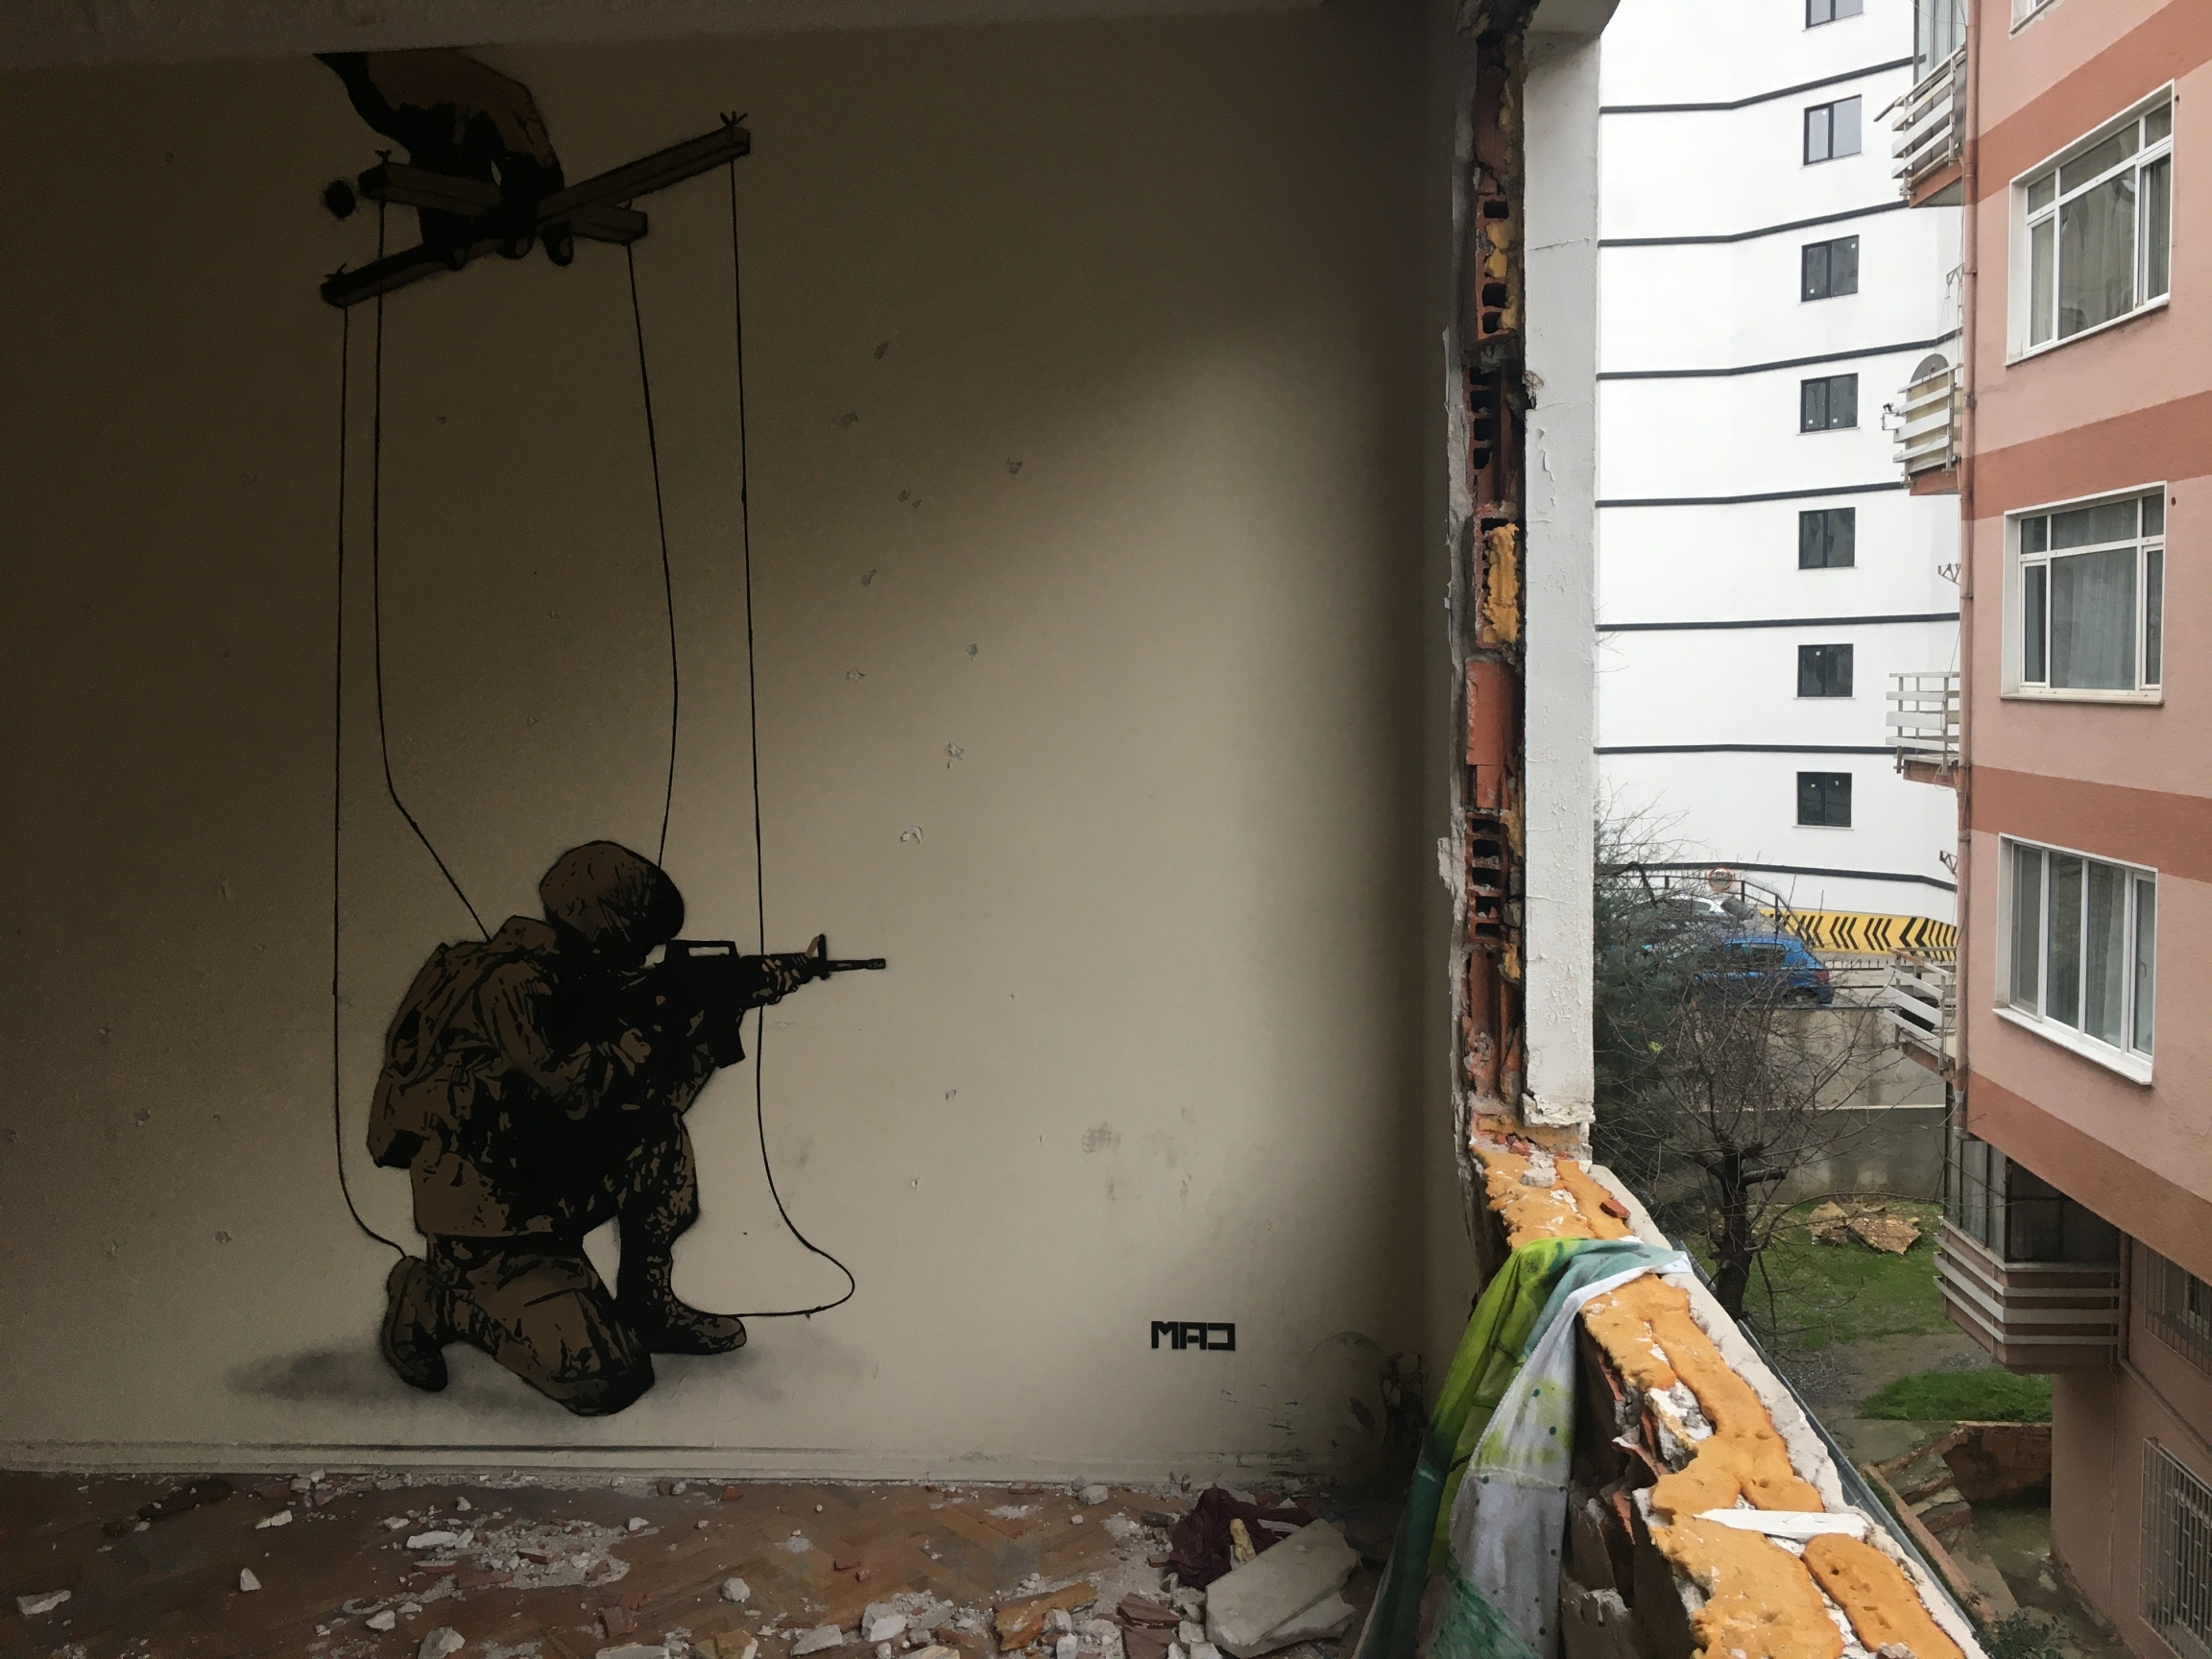 """Stencil artist MAD, from Tabriz, Iran, contributed a floor-to-ceiling image of a sniper aiming a gun, tied to puppet strings. He calls the piece """"Hidden Reality."""""""